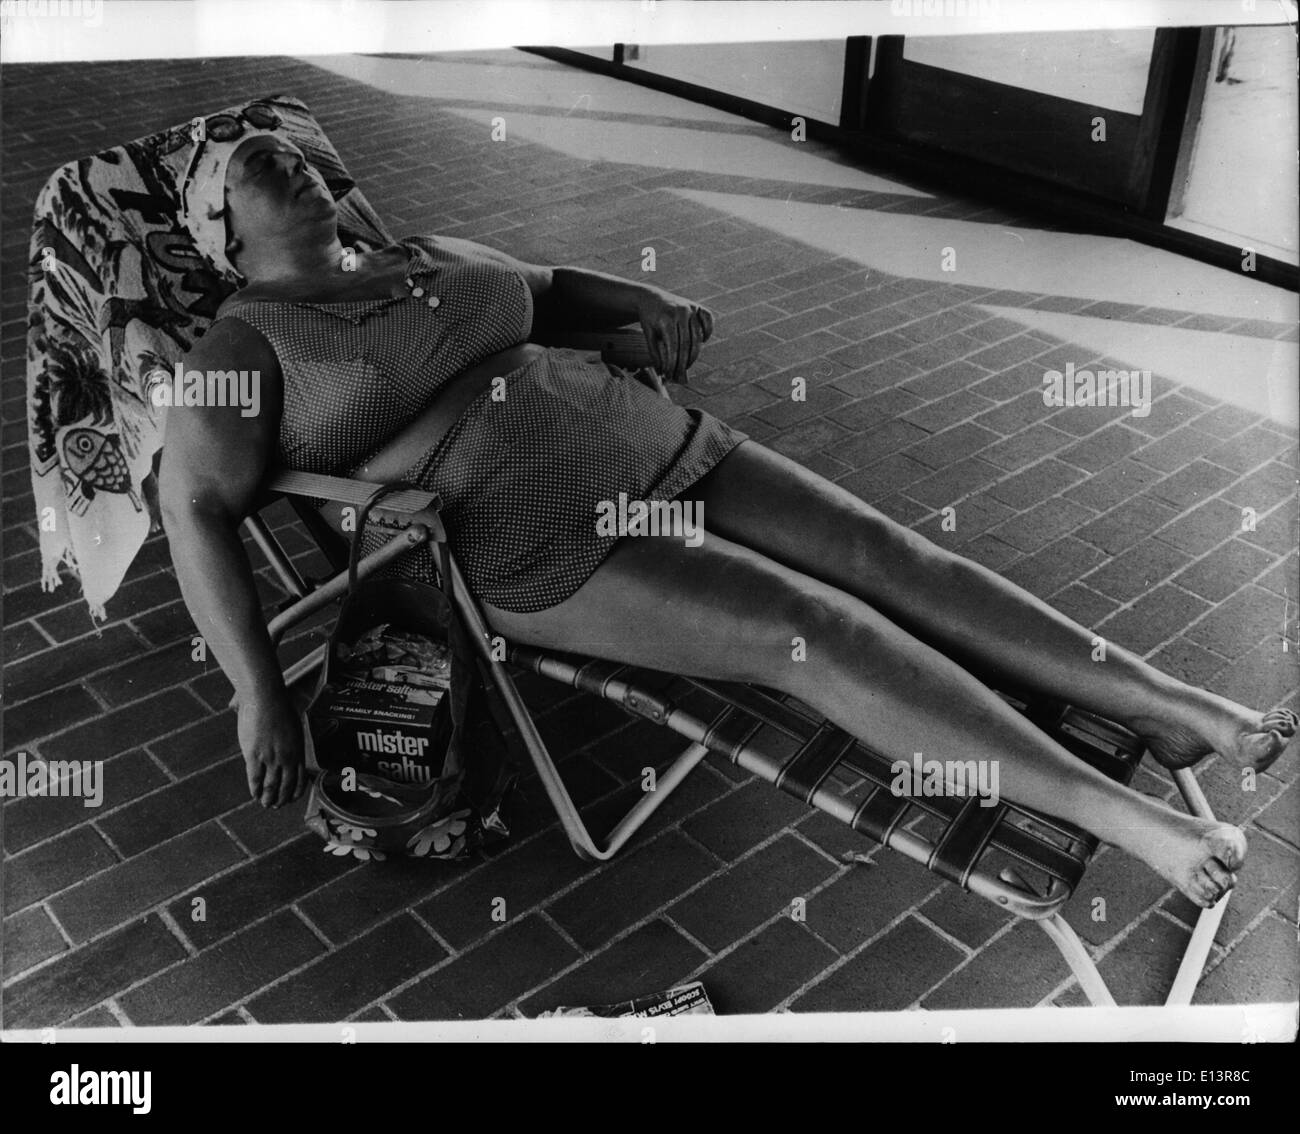 Mar. 27, 2012 - A Realistic Exhibit. : American sculptor, Duane Hanson, is holding an exhibition at the Louisiana Museum in Humlebak, Denmark, in which the figures, made in special forms of several materials, look like people from real life. Photo Shows An amazingly life-like figure of outsize woman relaxing in a sun-chair one of the exhibits on exhibition. - Stock Image